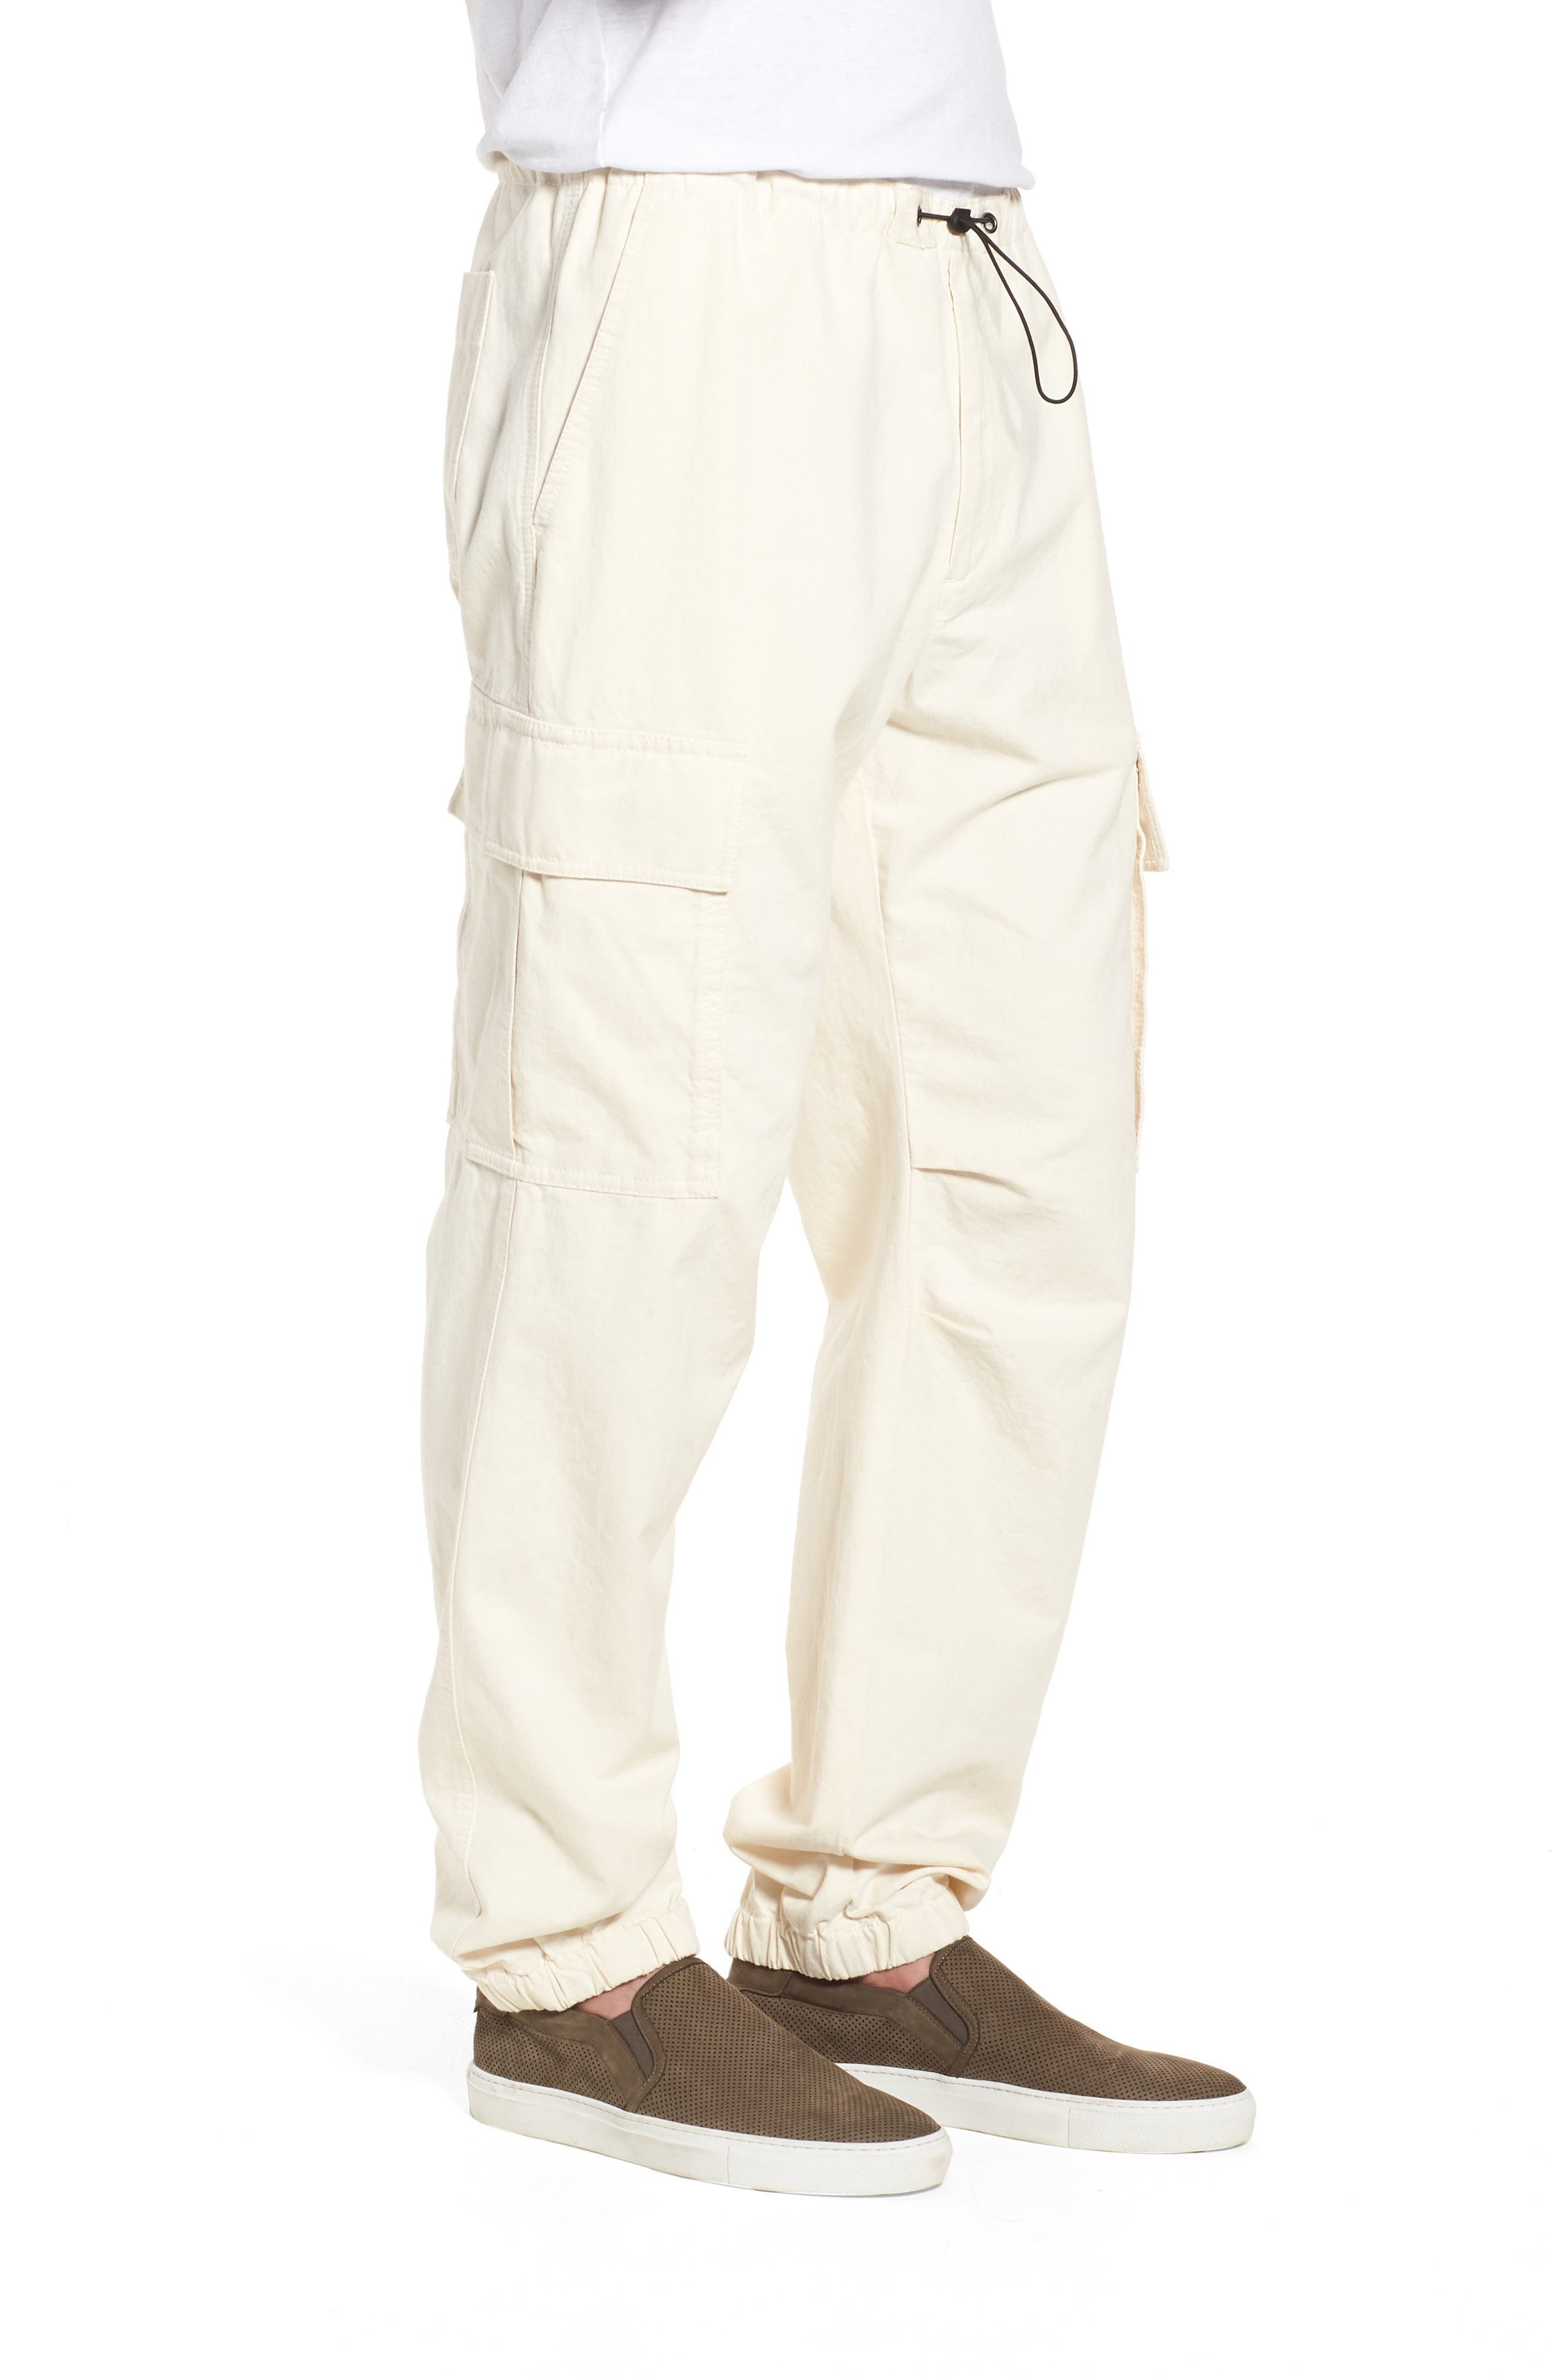 JAMES PERSE,                             Cargo Pants,                             Alternate thumbnail 3, color,                             IVORY